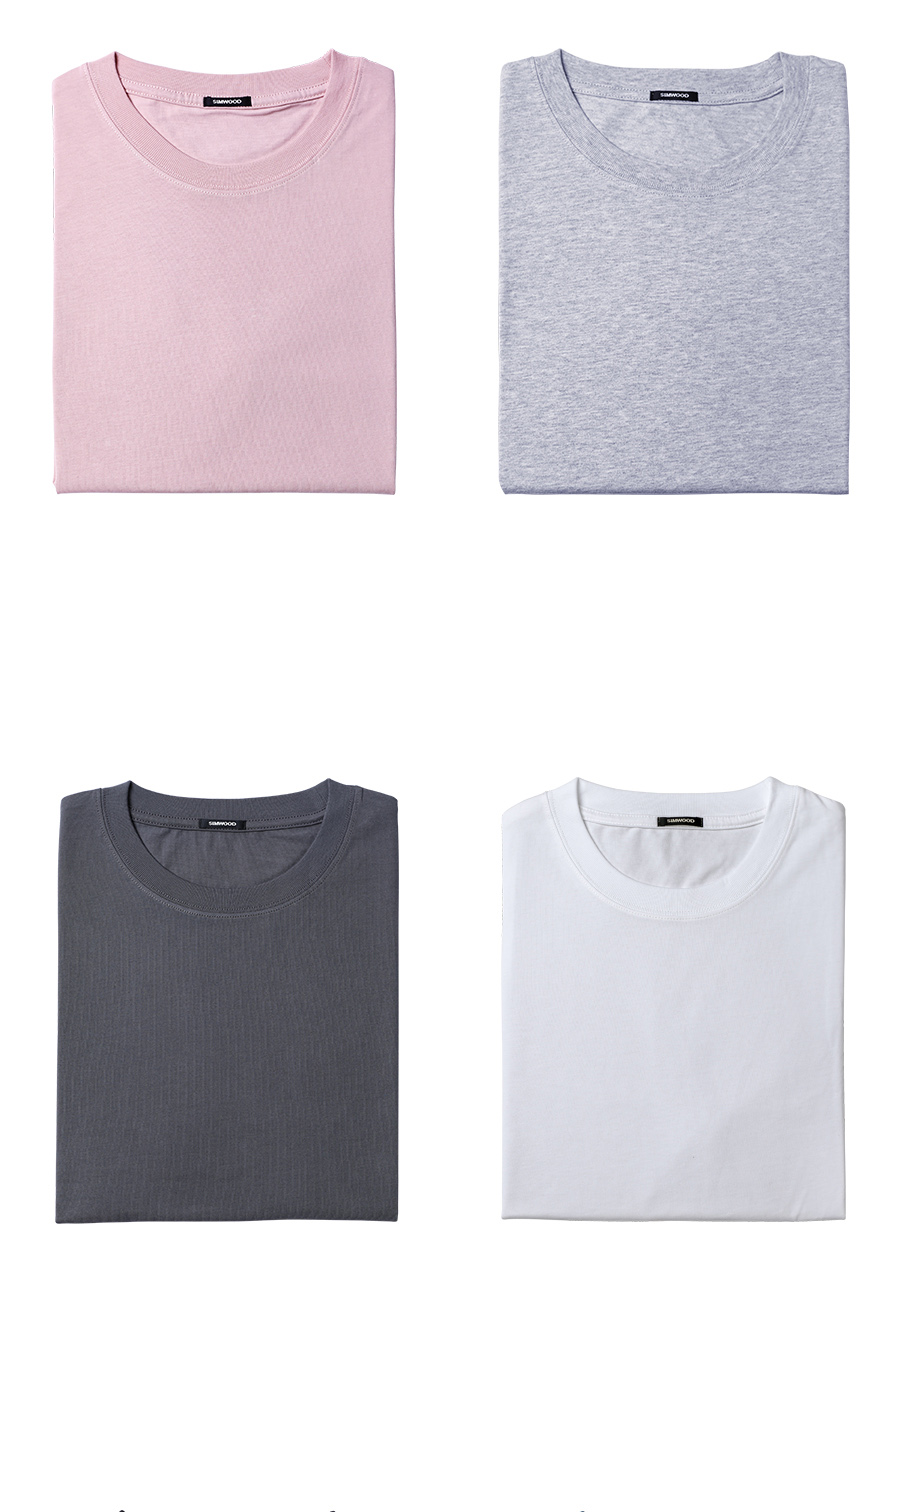 SIMWOOD 19 Summer New T-Shirt Men 100% Cotton Solid Color Casual t shirt Basics O-neck High Quality Plus Size Male Tee 190004 30